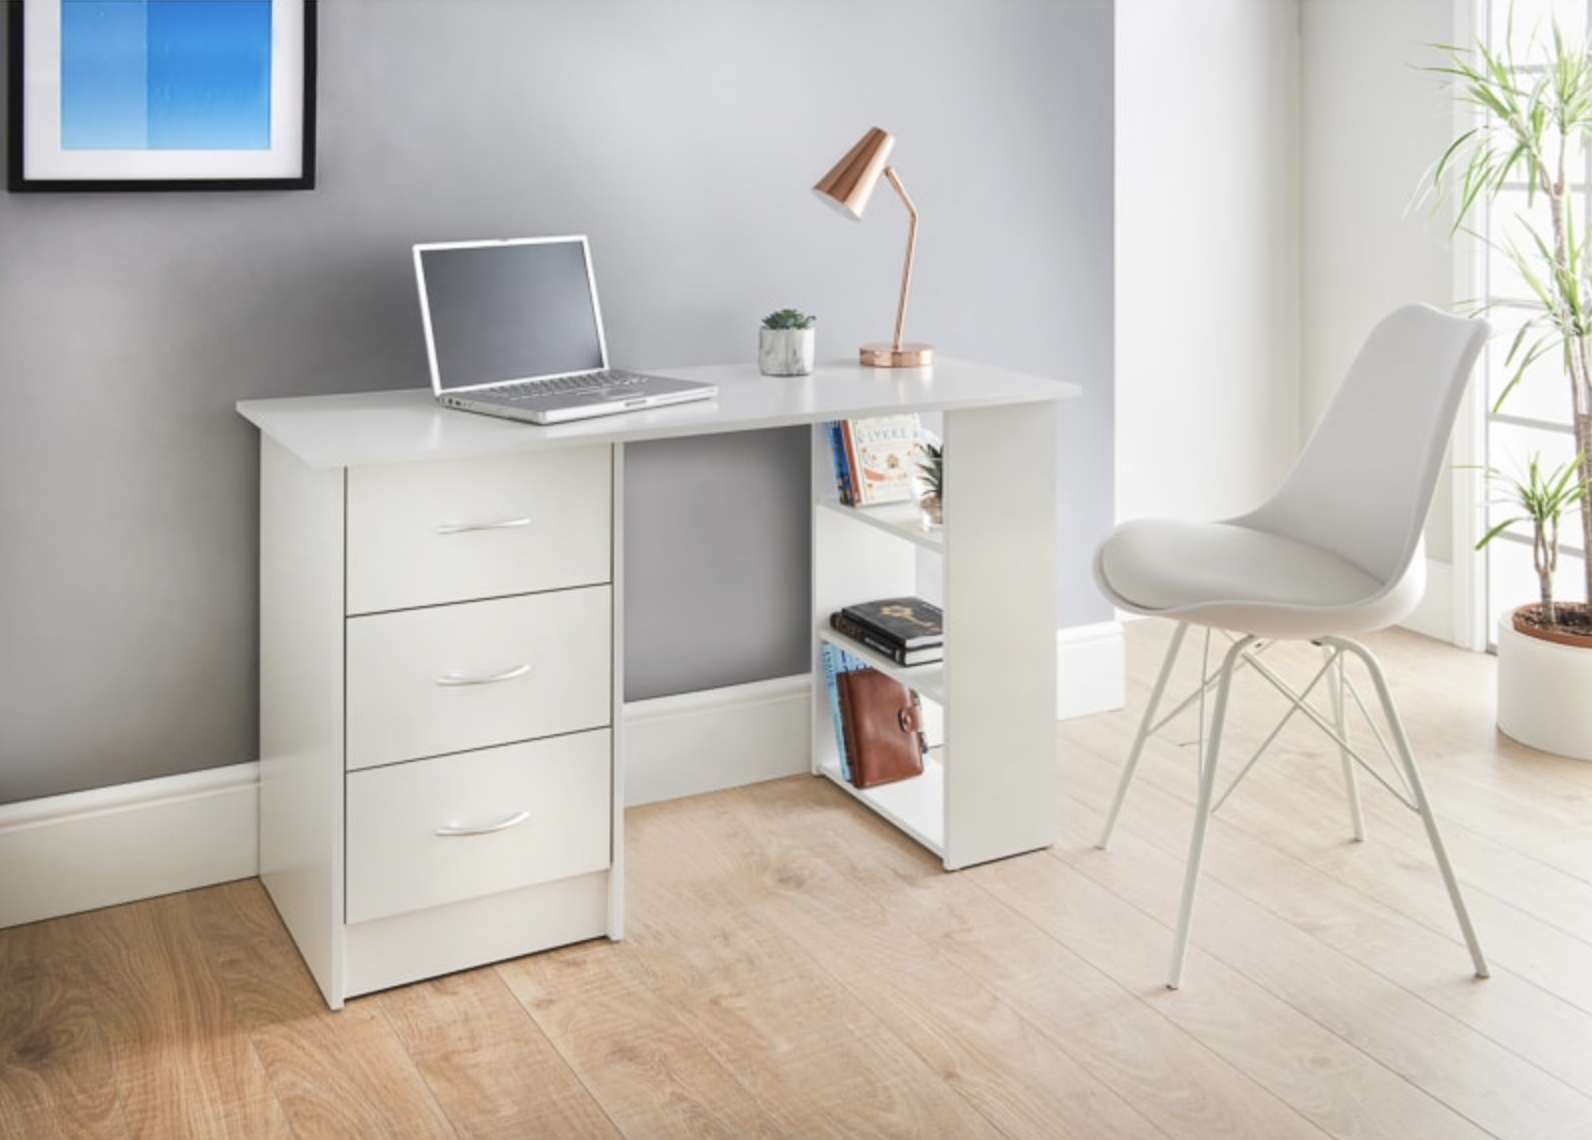 b&m stores furniture desk